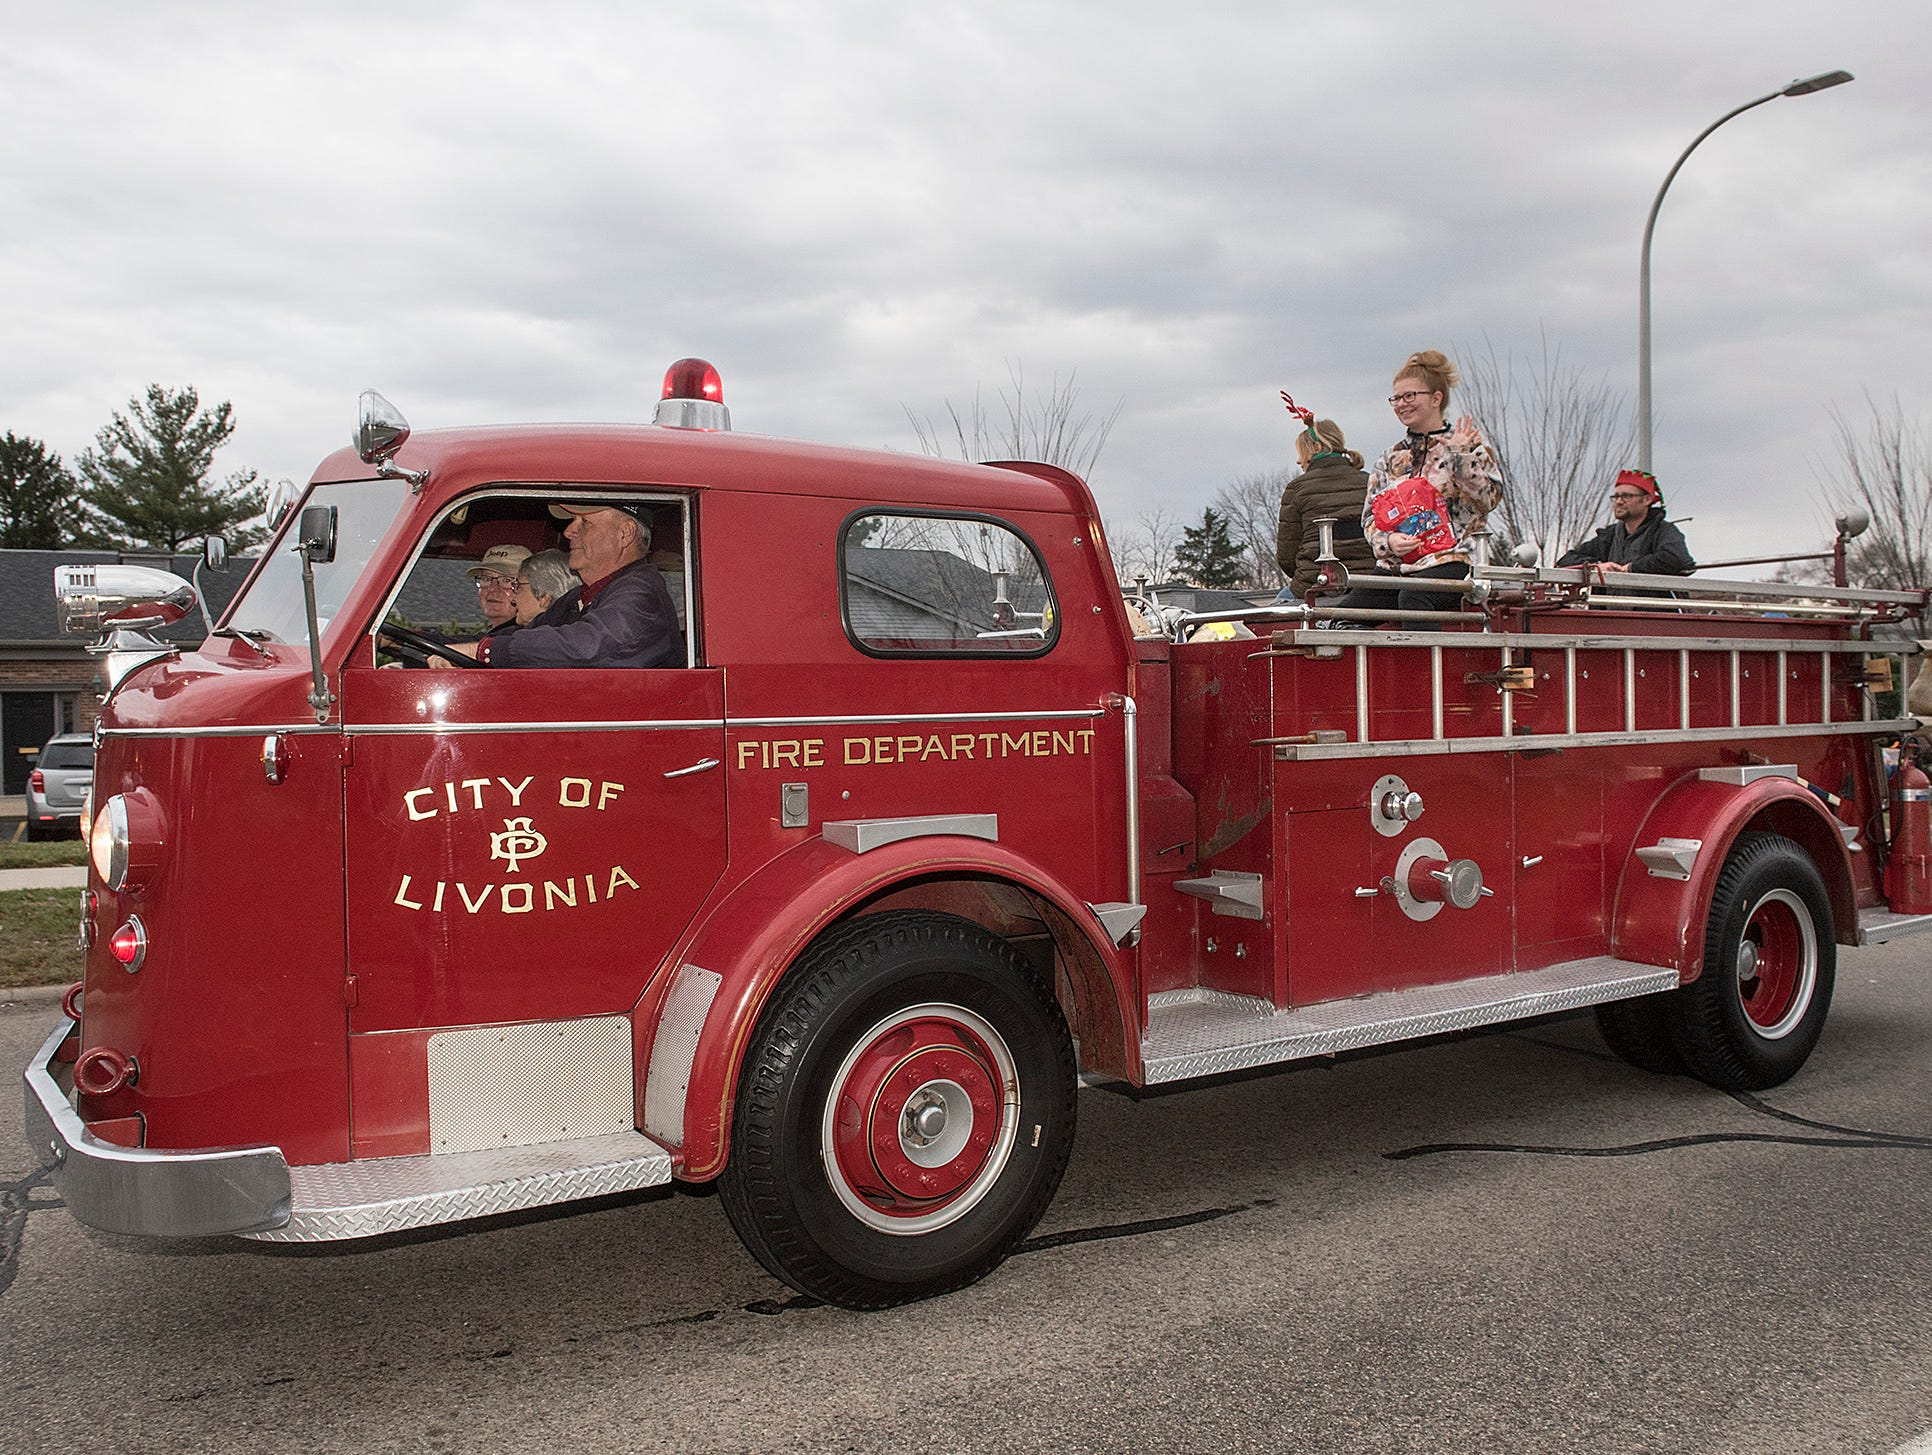 Livonia's vintage fire truck makes an appearance.